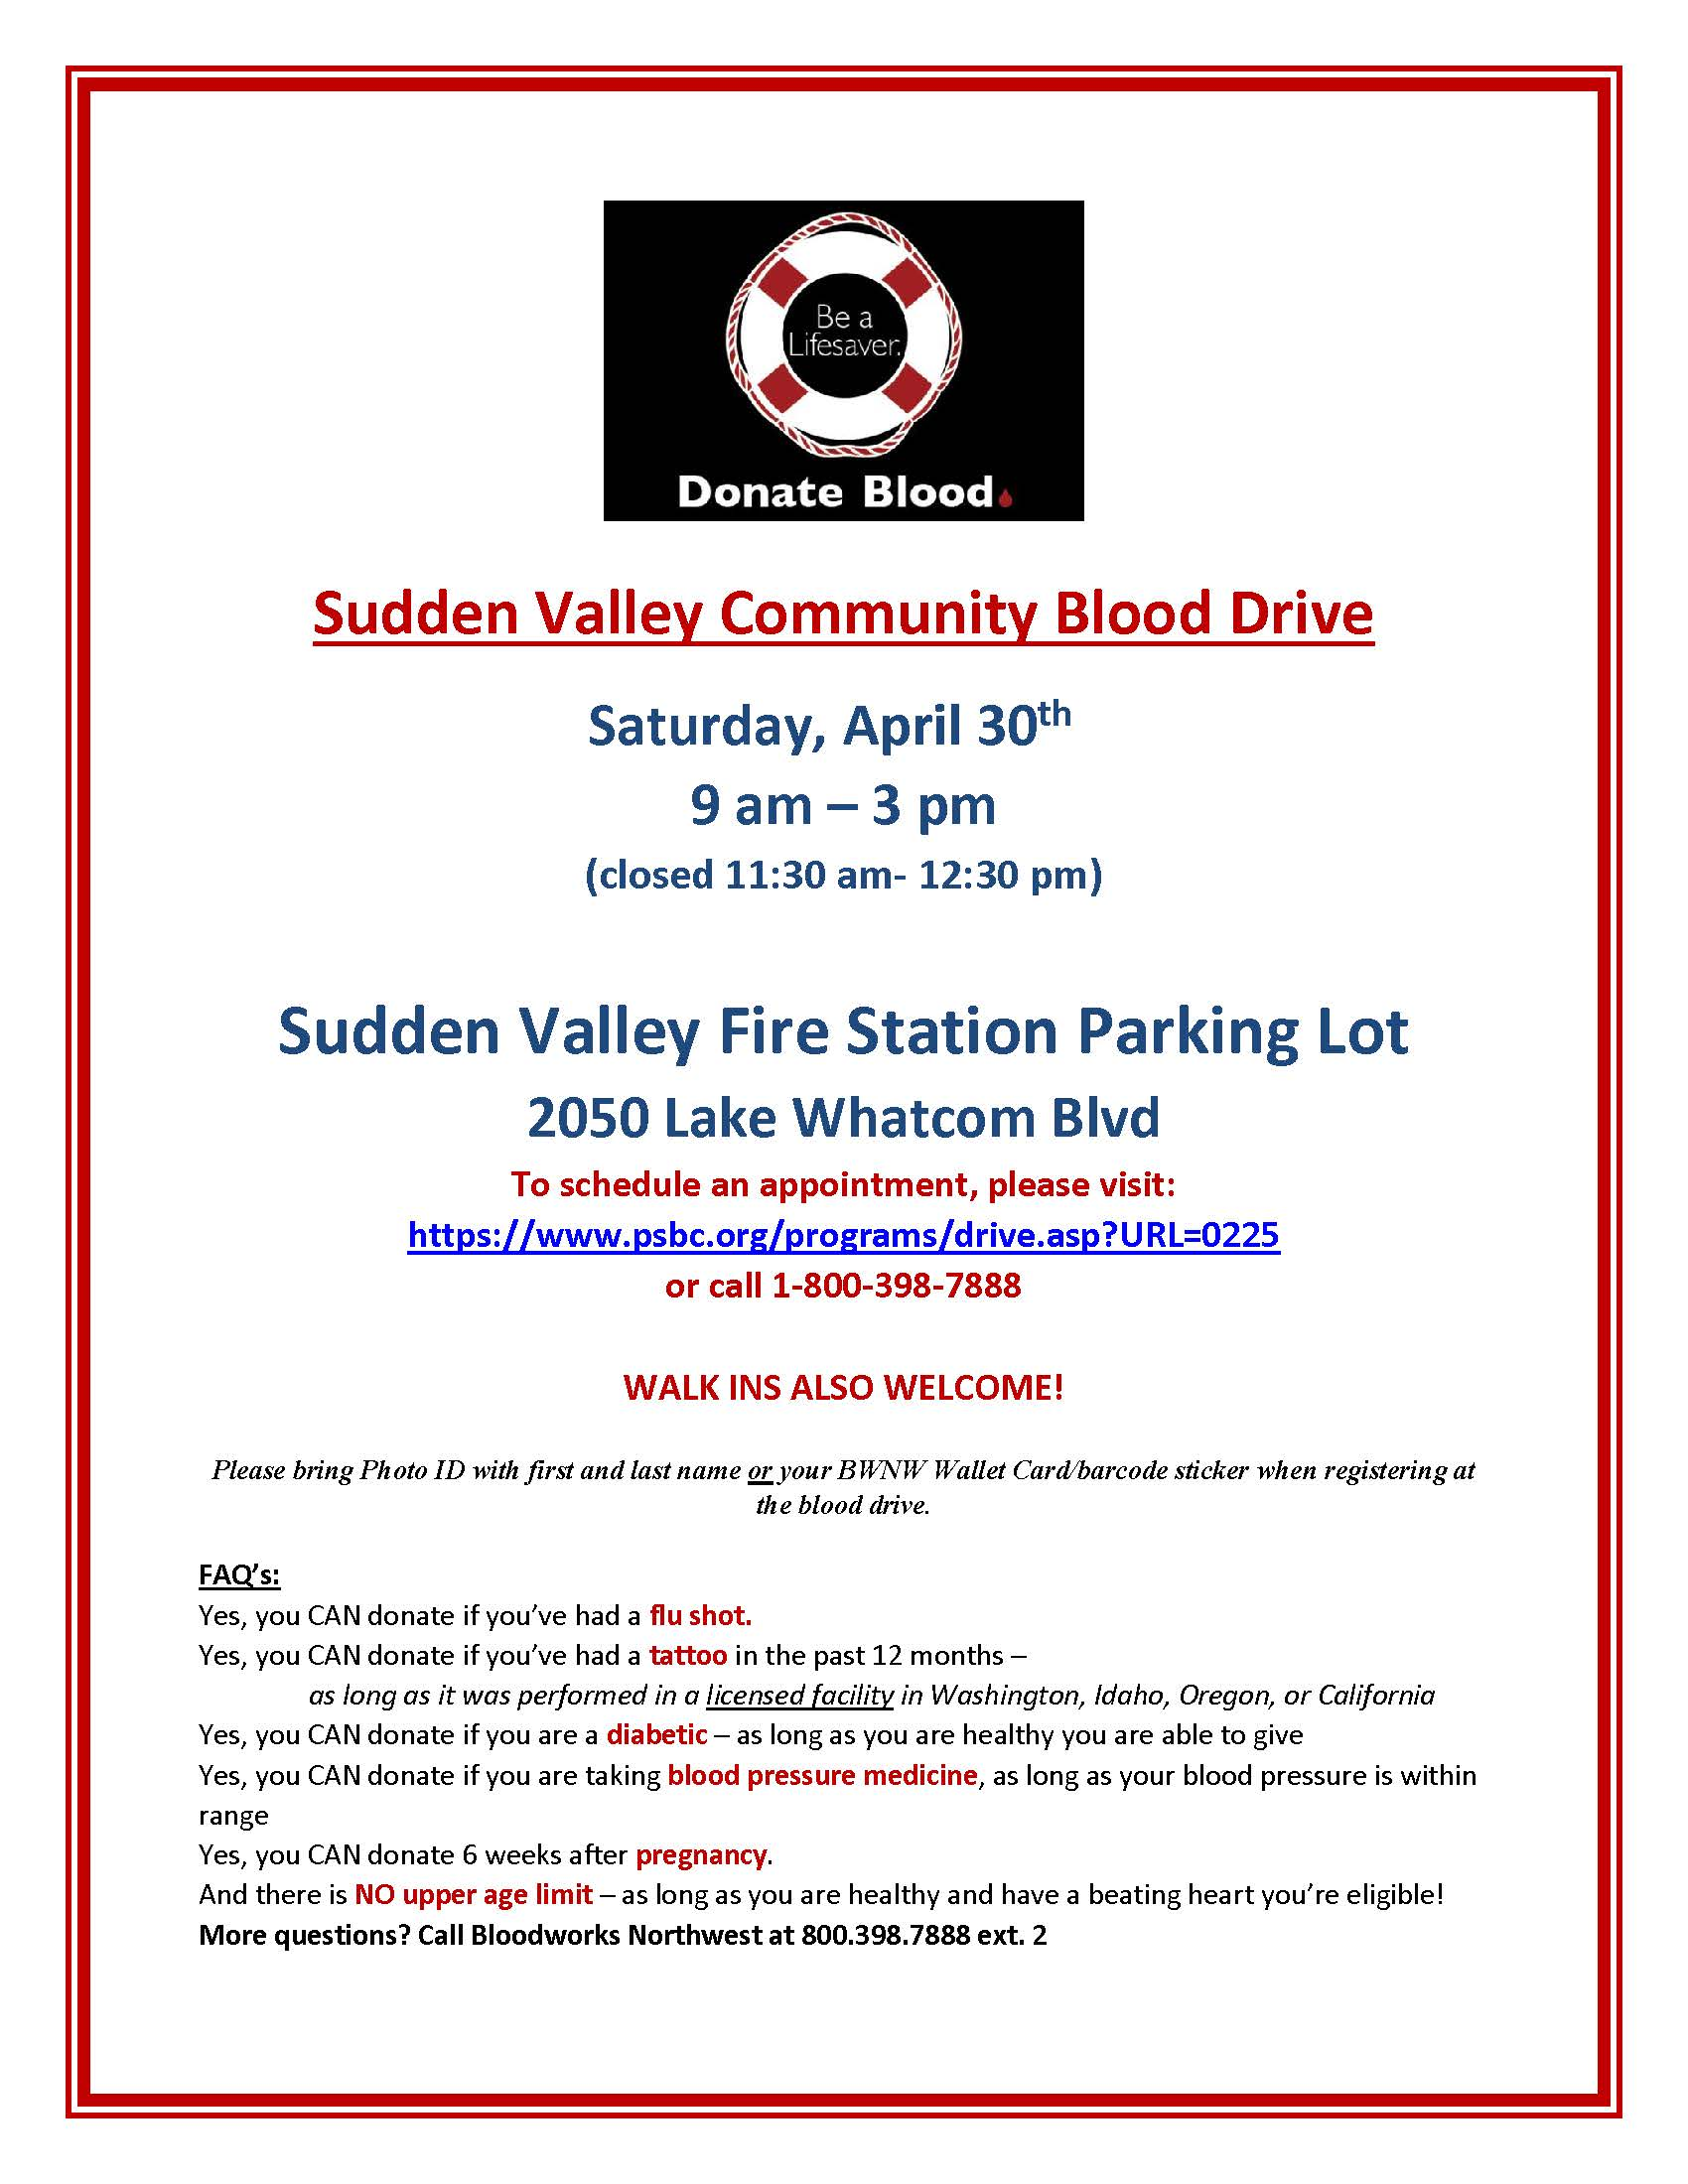 Sudden Valley Community Blood Drive